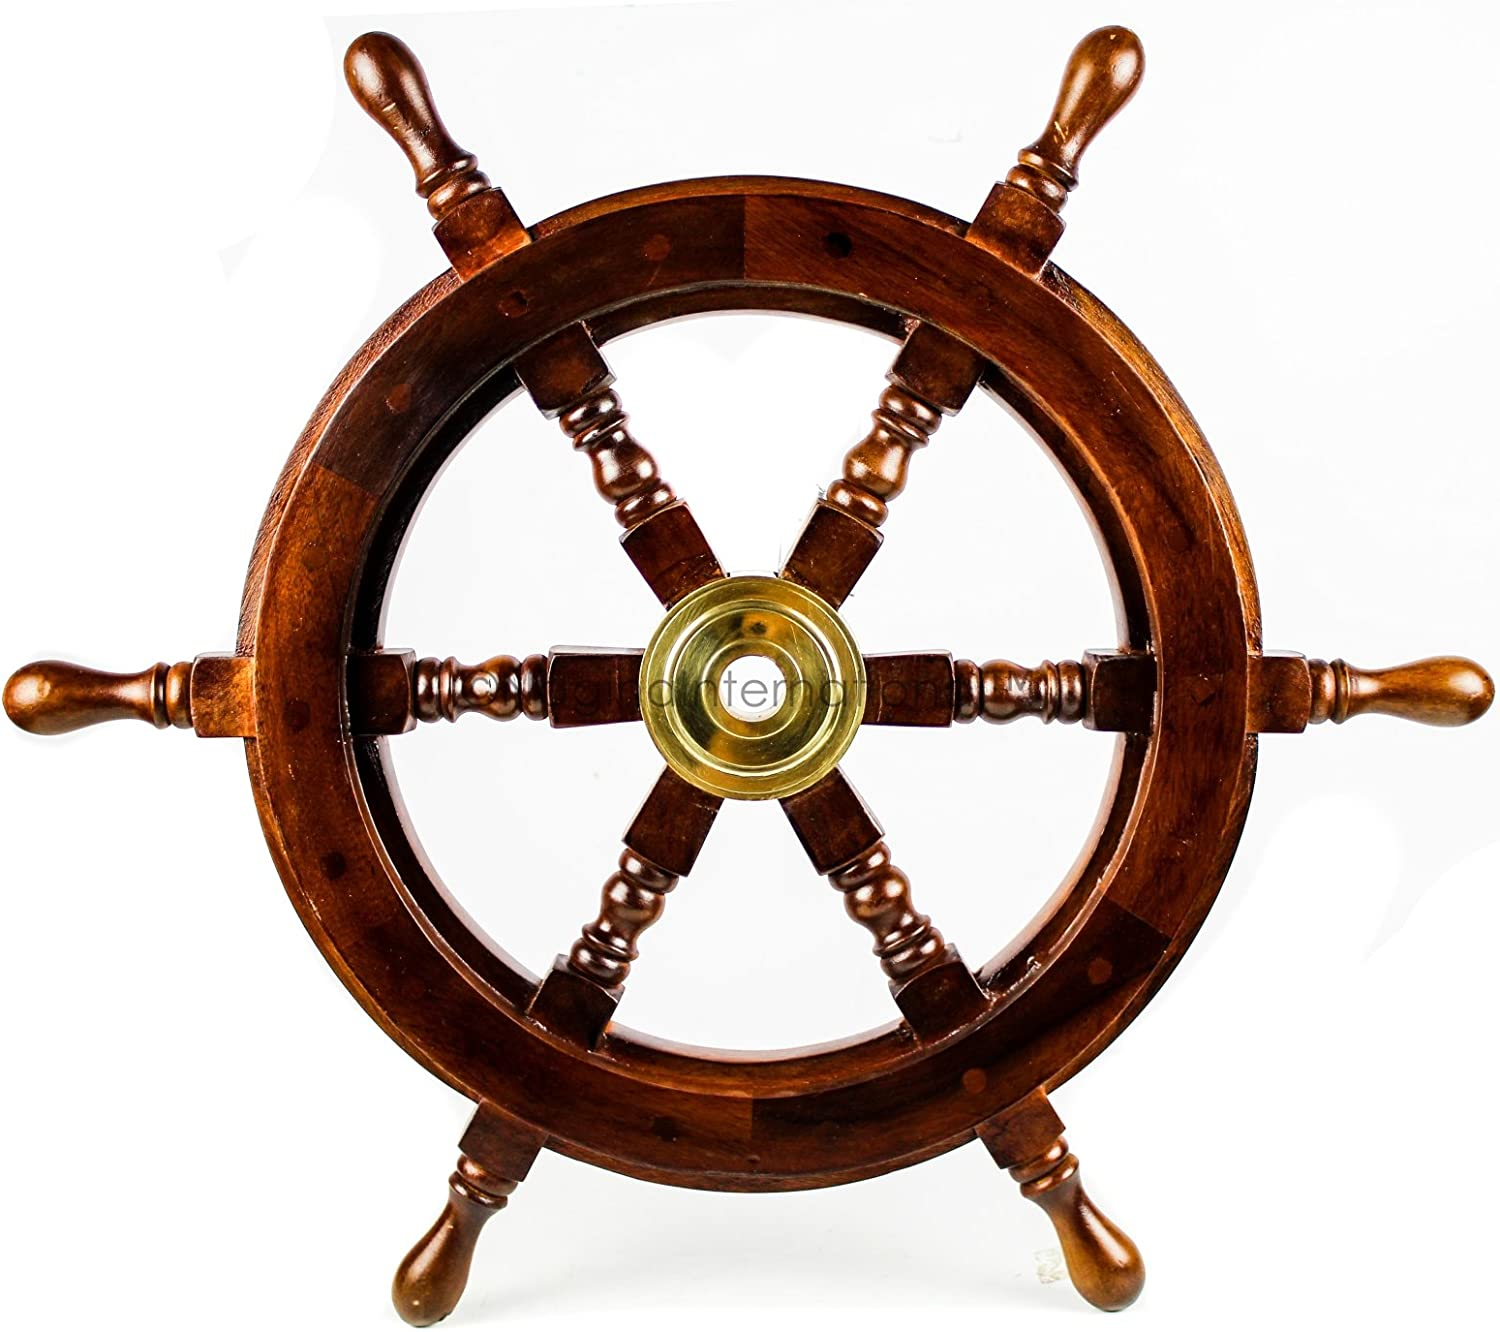 Nagina International Premium Nautical Handcrafted Wooden Ship Wheel | Pirate's Wall Home Decor & Gifts (30 Inches, Dark Rosewood)